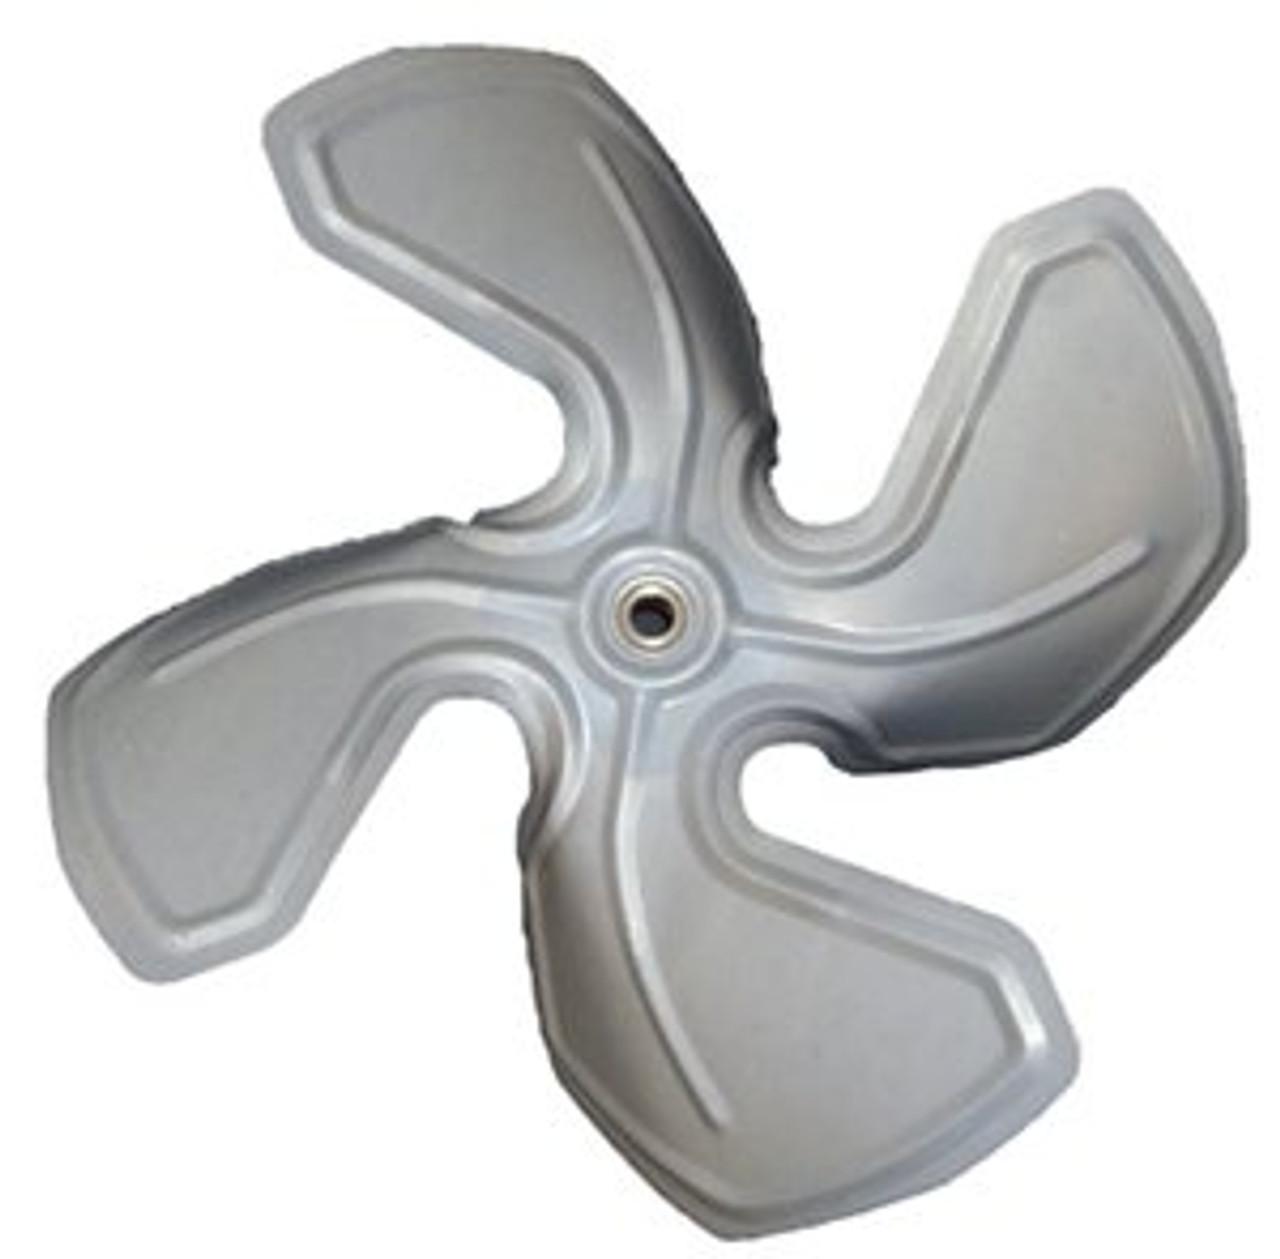 "E-97006971 1(open box) 4"" Diameter Broan Fan Blade"